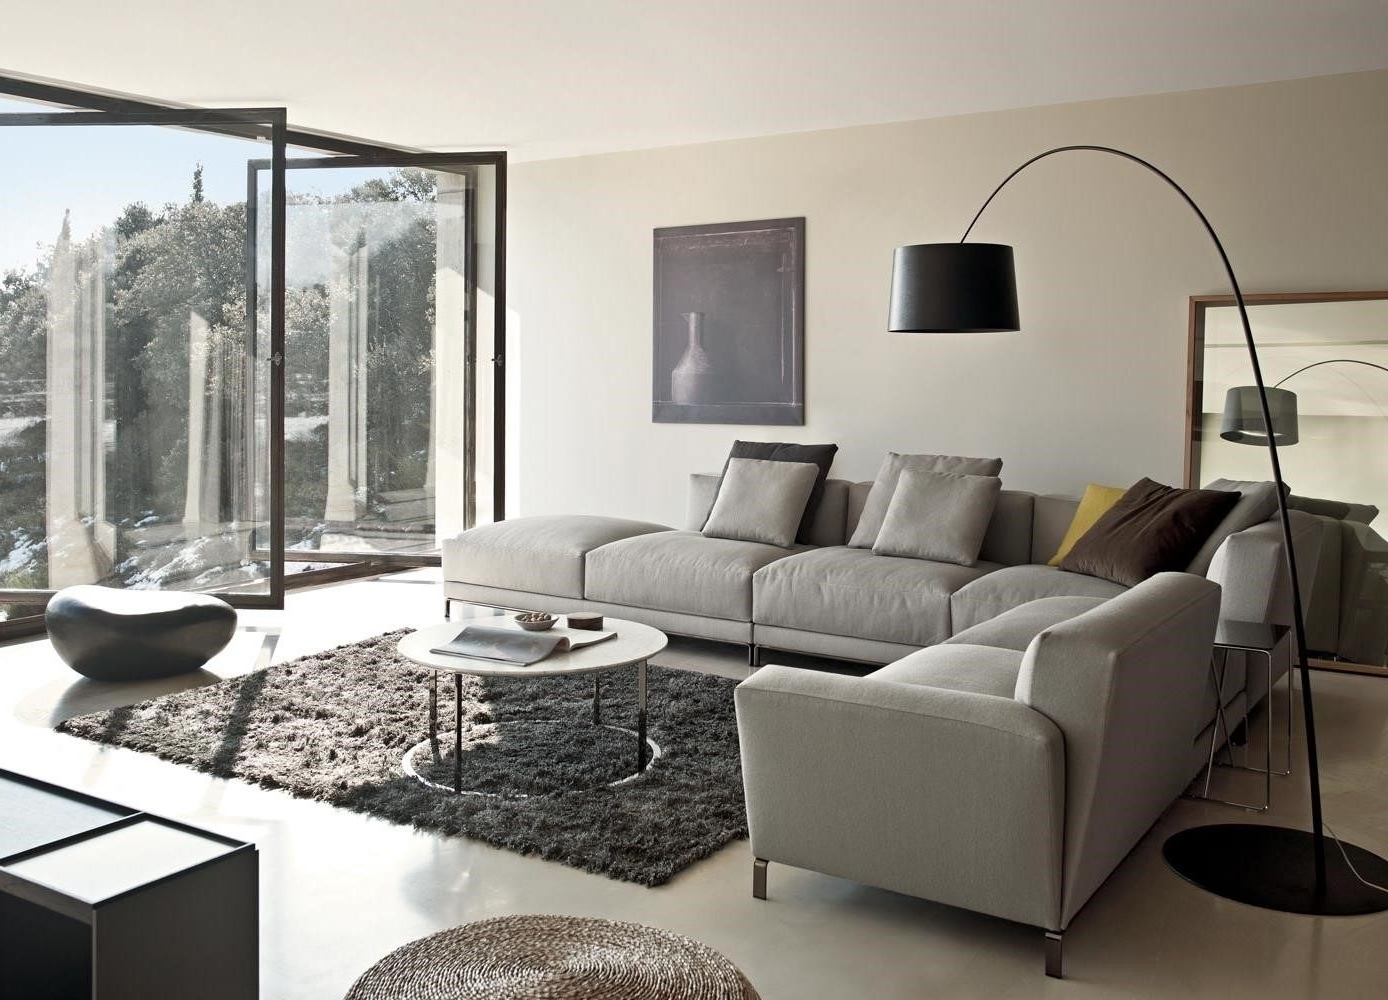 Sectional Sofas For Condos Intended For 2018 Beautiful Small Sectional Sofa For Apartment 12 For Your Condo (View 17 of 20)